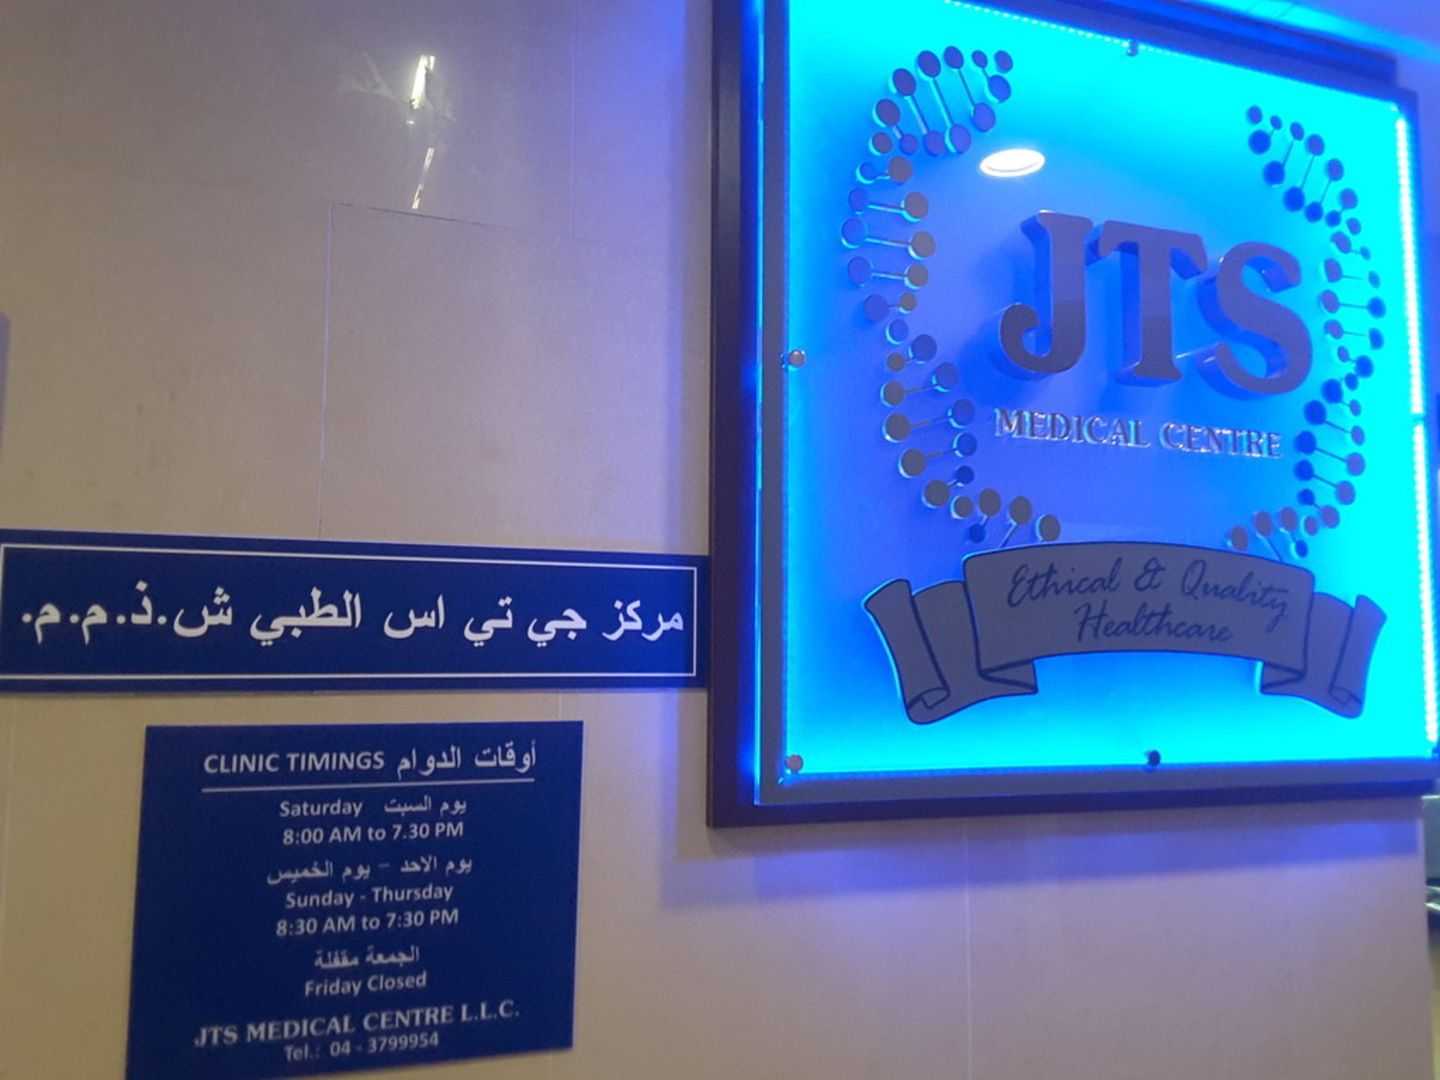 JTS Medical Centre 0